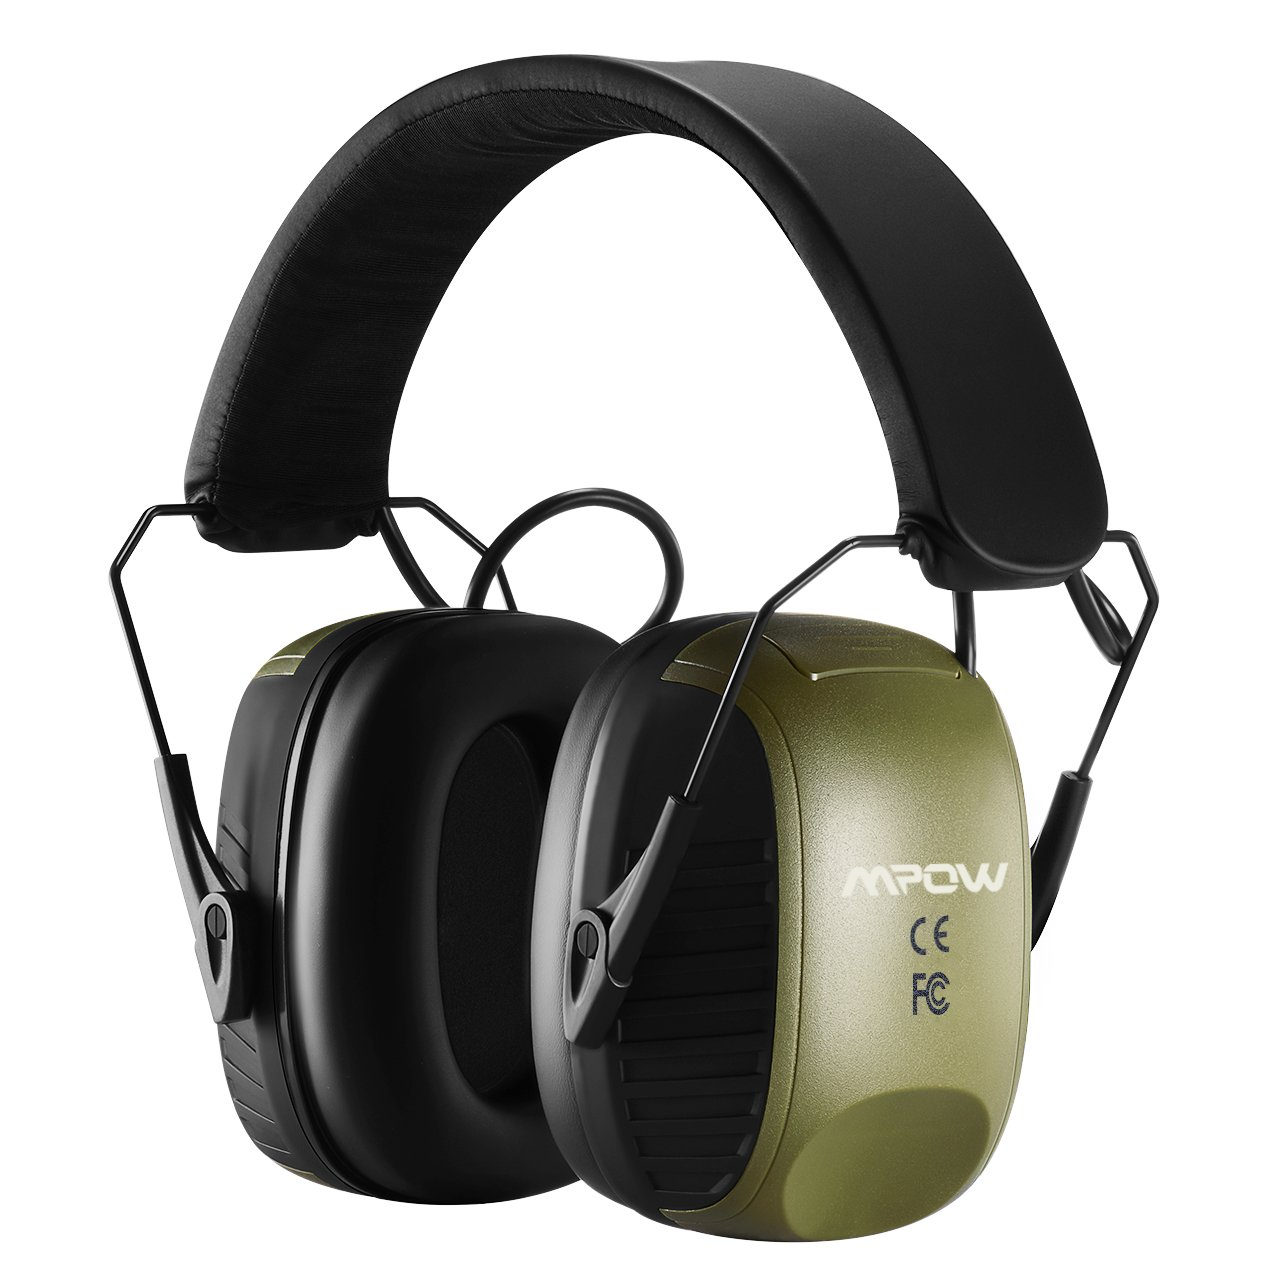 Mpow Electronic Ear Protection Earmuffs, Sound Amplification Shooting Ear Protection Ear Muffs Noise Protection, NRR 27dB Hearing Protection Ear Muffs for Shooting Hunting Season with a Carrying Bag